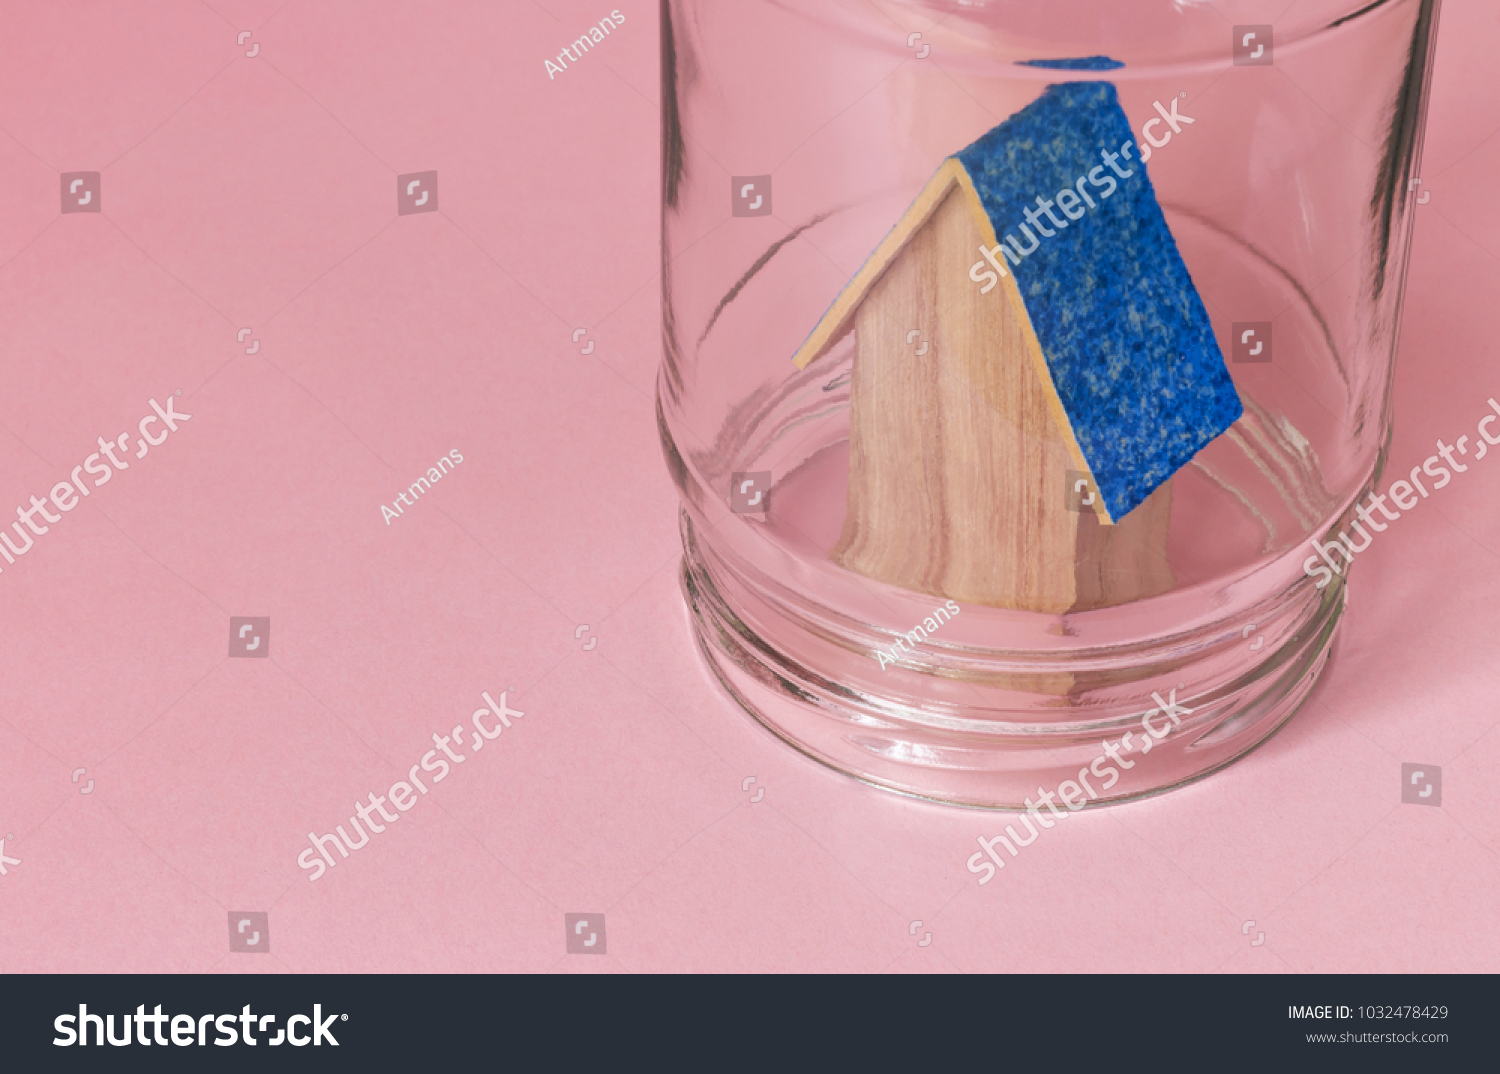 House in a jar protected in safety. Protected from misfortunes. House in a jar on a pink background with a blue roof. #1032478429